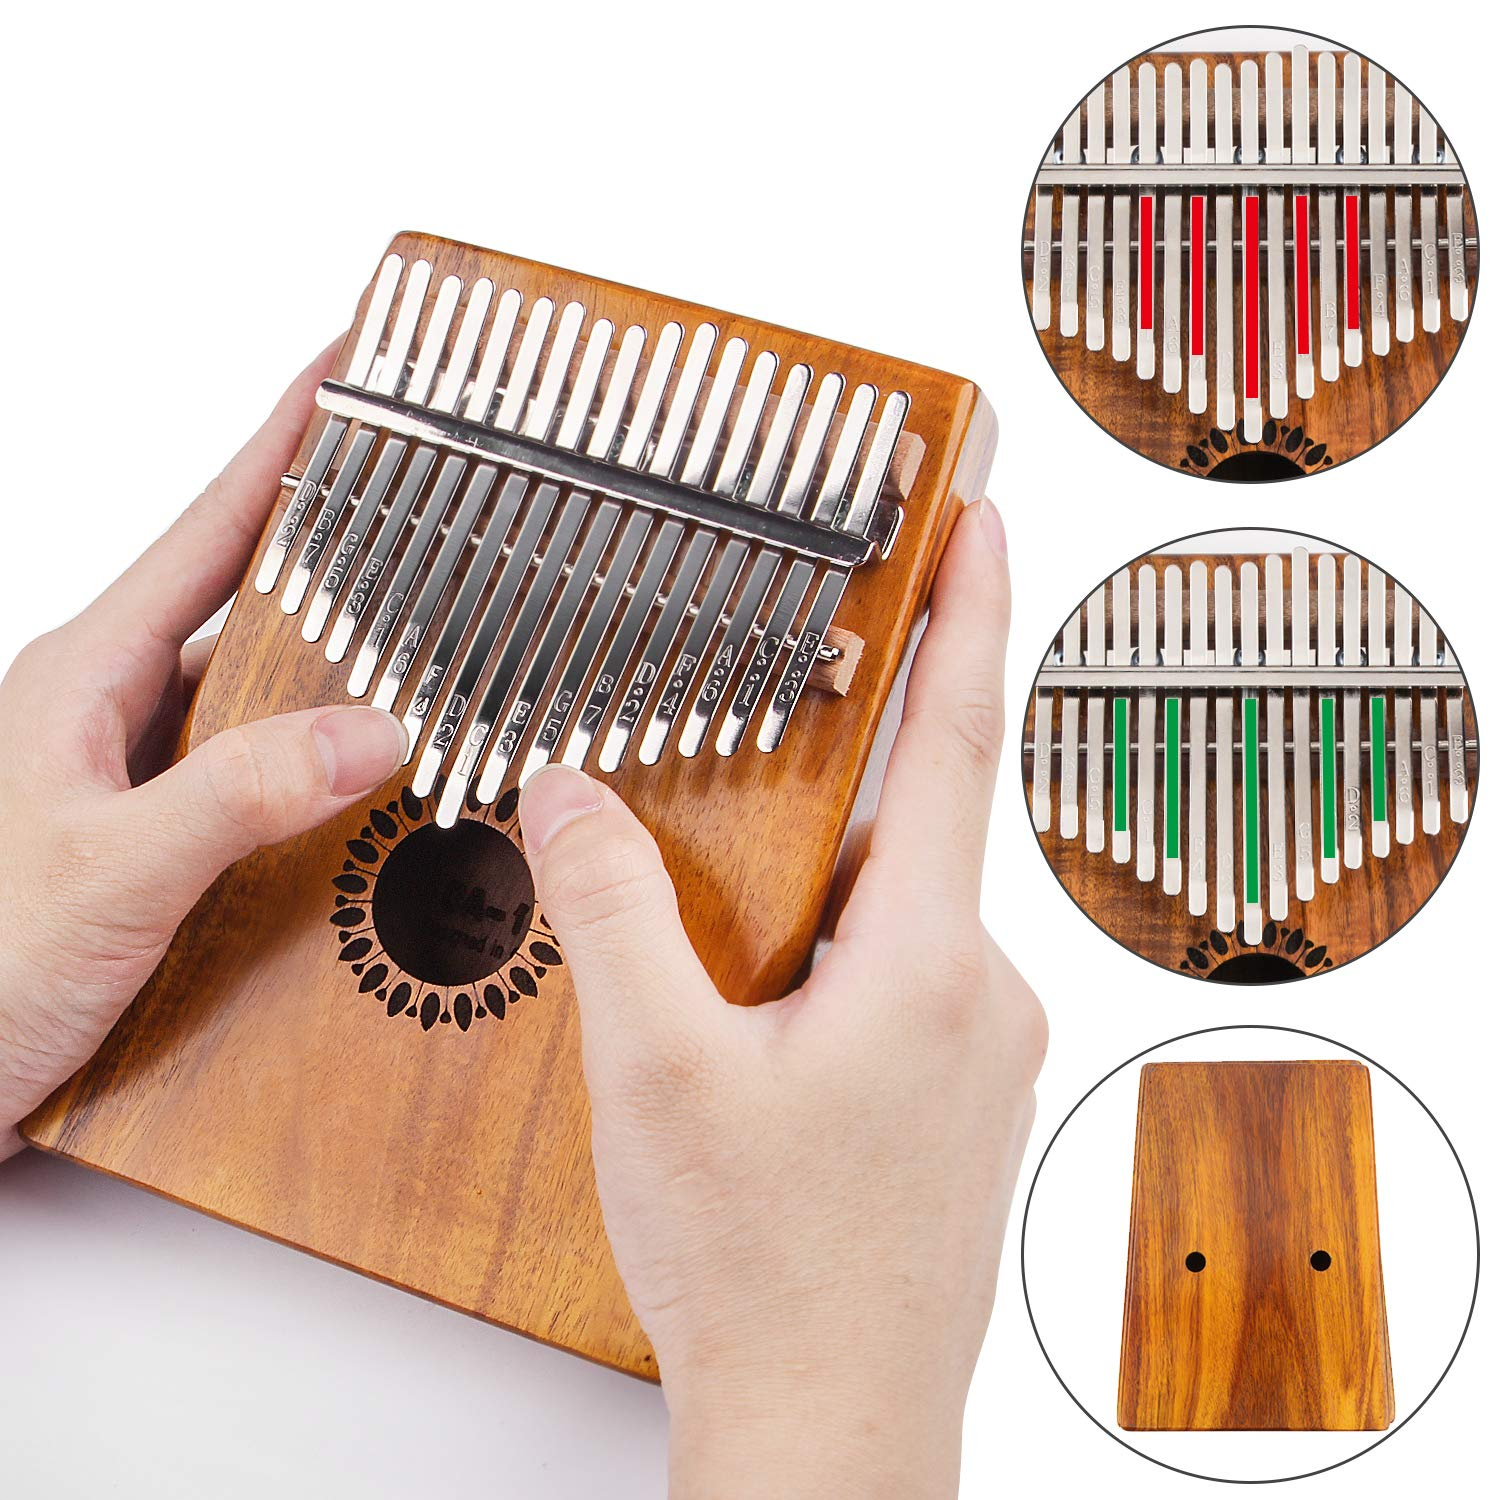 Kalimba Thumb Piano 17 Keys, Portable Mbira Finger Piano Gifts for Kids and Adults Beginners by Newlam (Image #7)